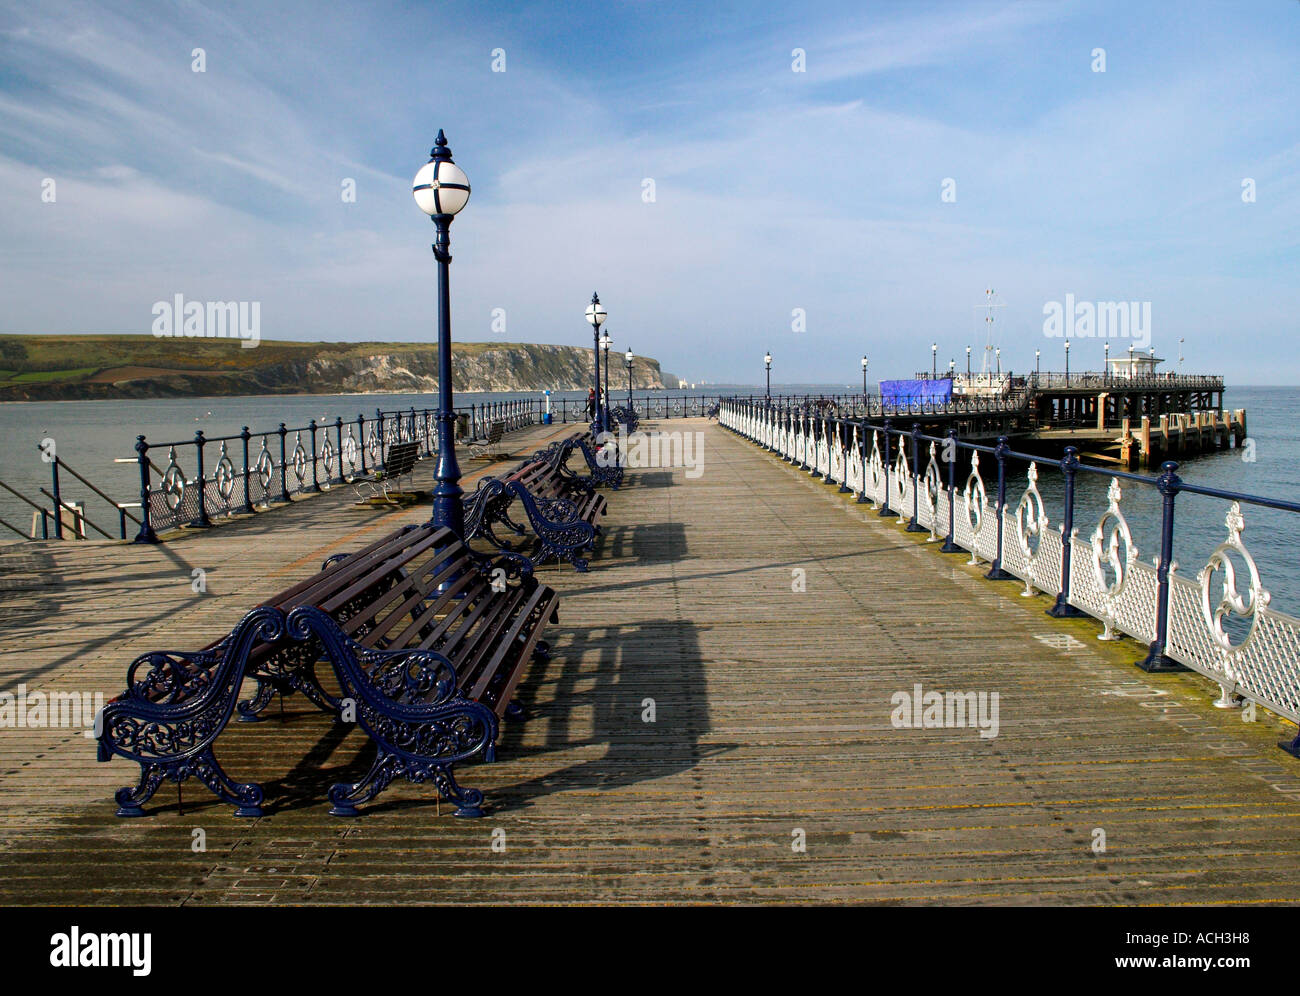 Swanage Pier Dorset on summer's day looking out to sea with blue ray clouded sky - Stock Image